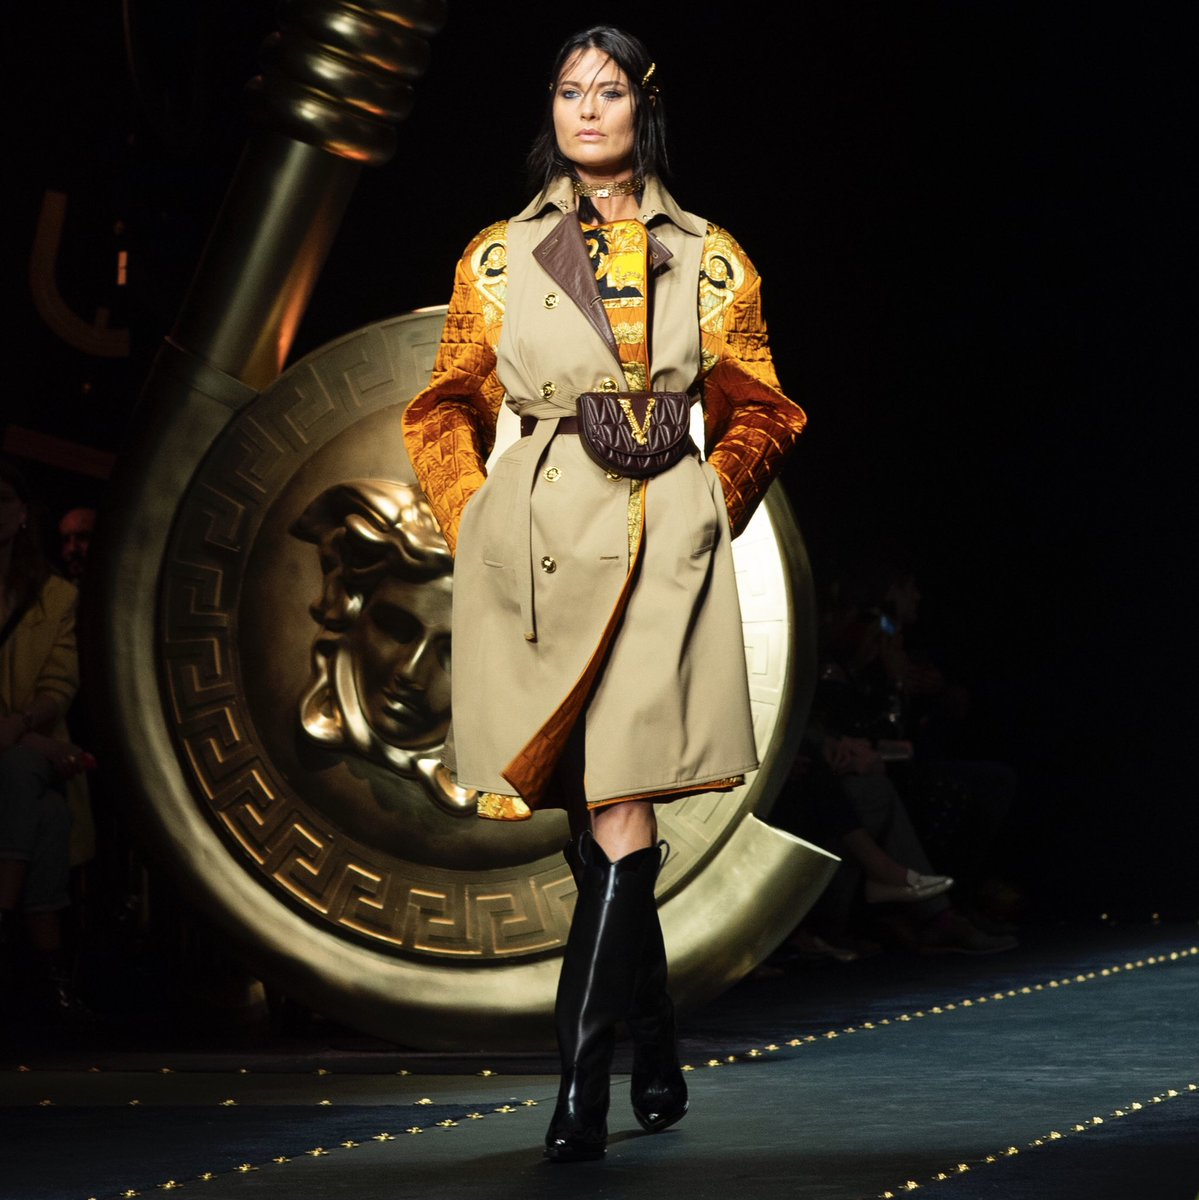 Shalom Harlow opens the #VersaceFW19 runway show wearing a trench coat with Barocco print accents, a Virtus belt bag and knee high V-Western boots. #MFW  Watch the show:  https://t.co/drIKwcAARG